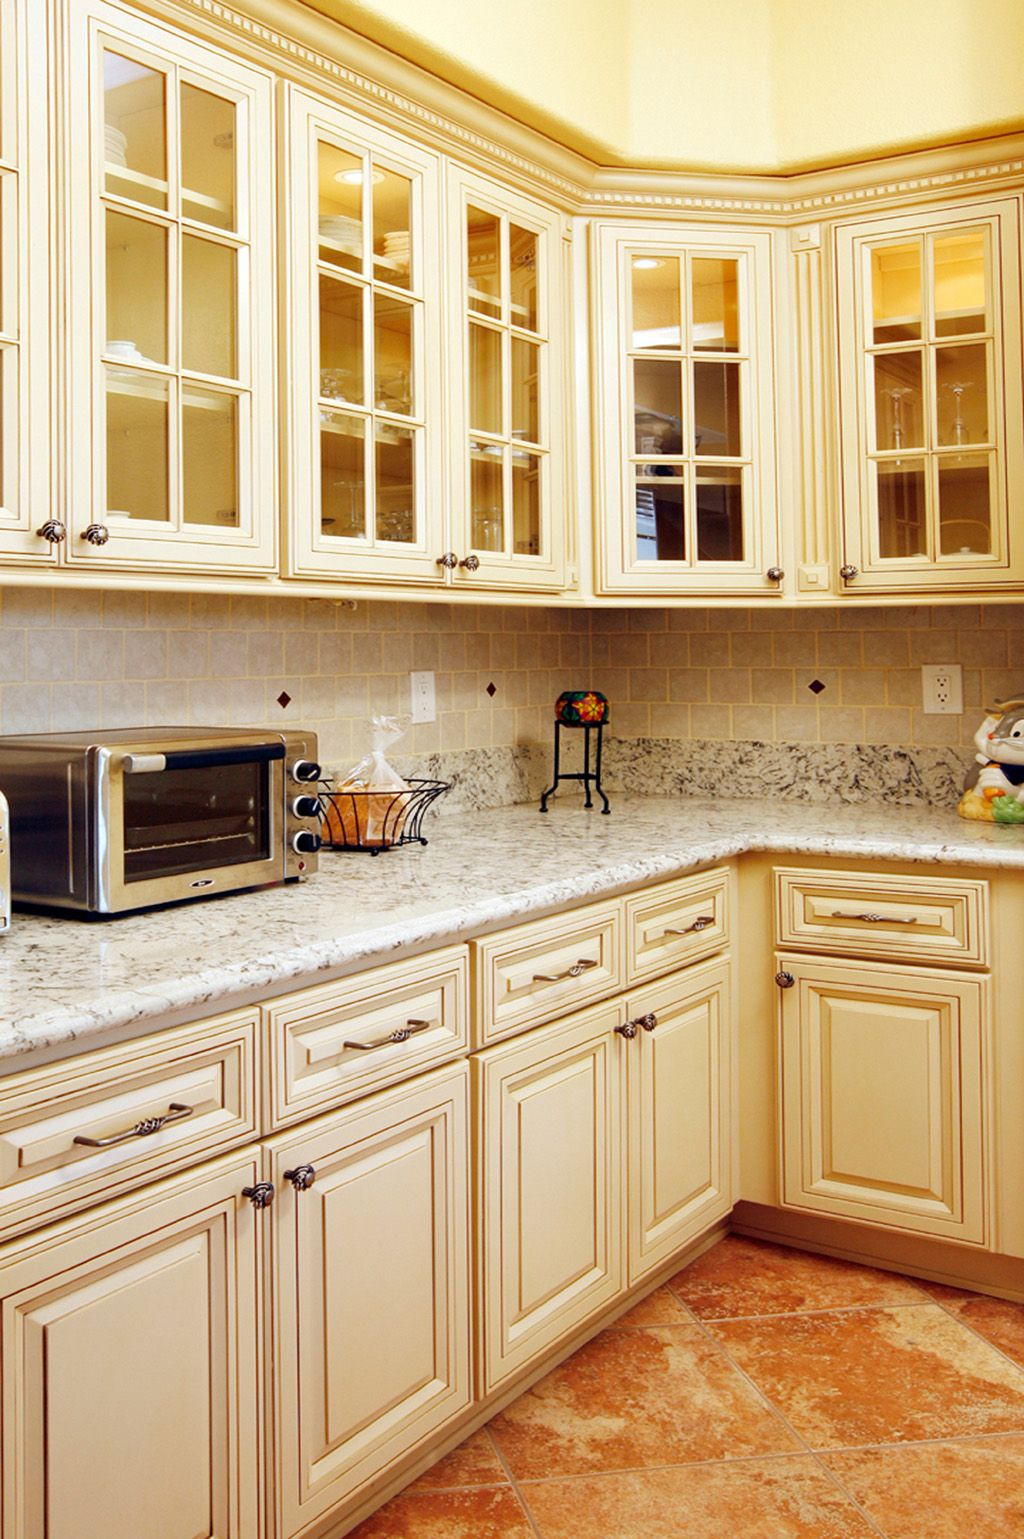 Continental Cabinet Decorative Effect Cabinet Kitchen Cabinets Kitchen Cabinet Manufacturers